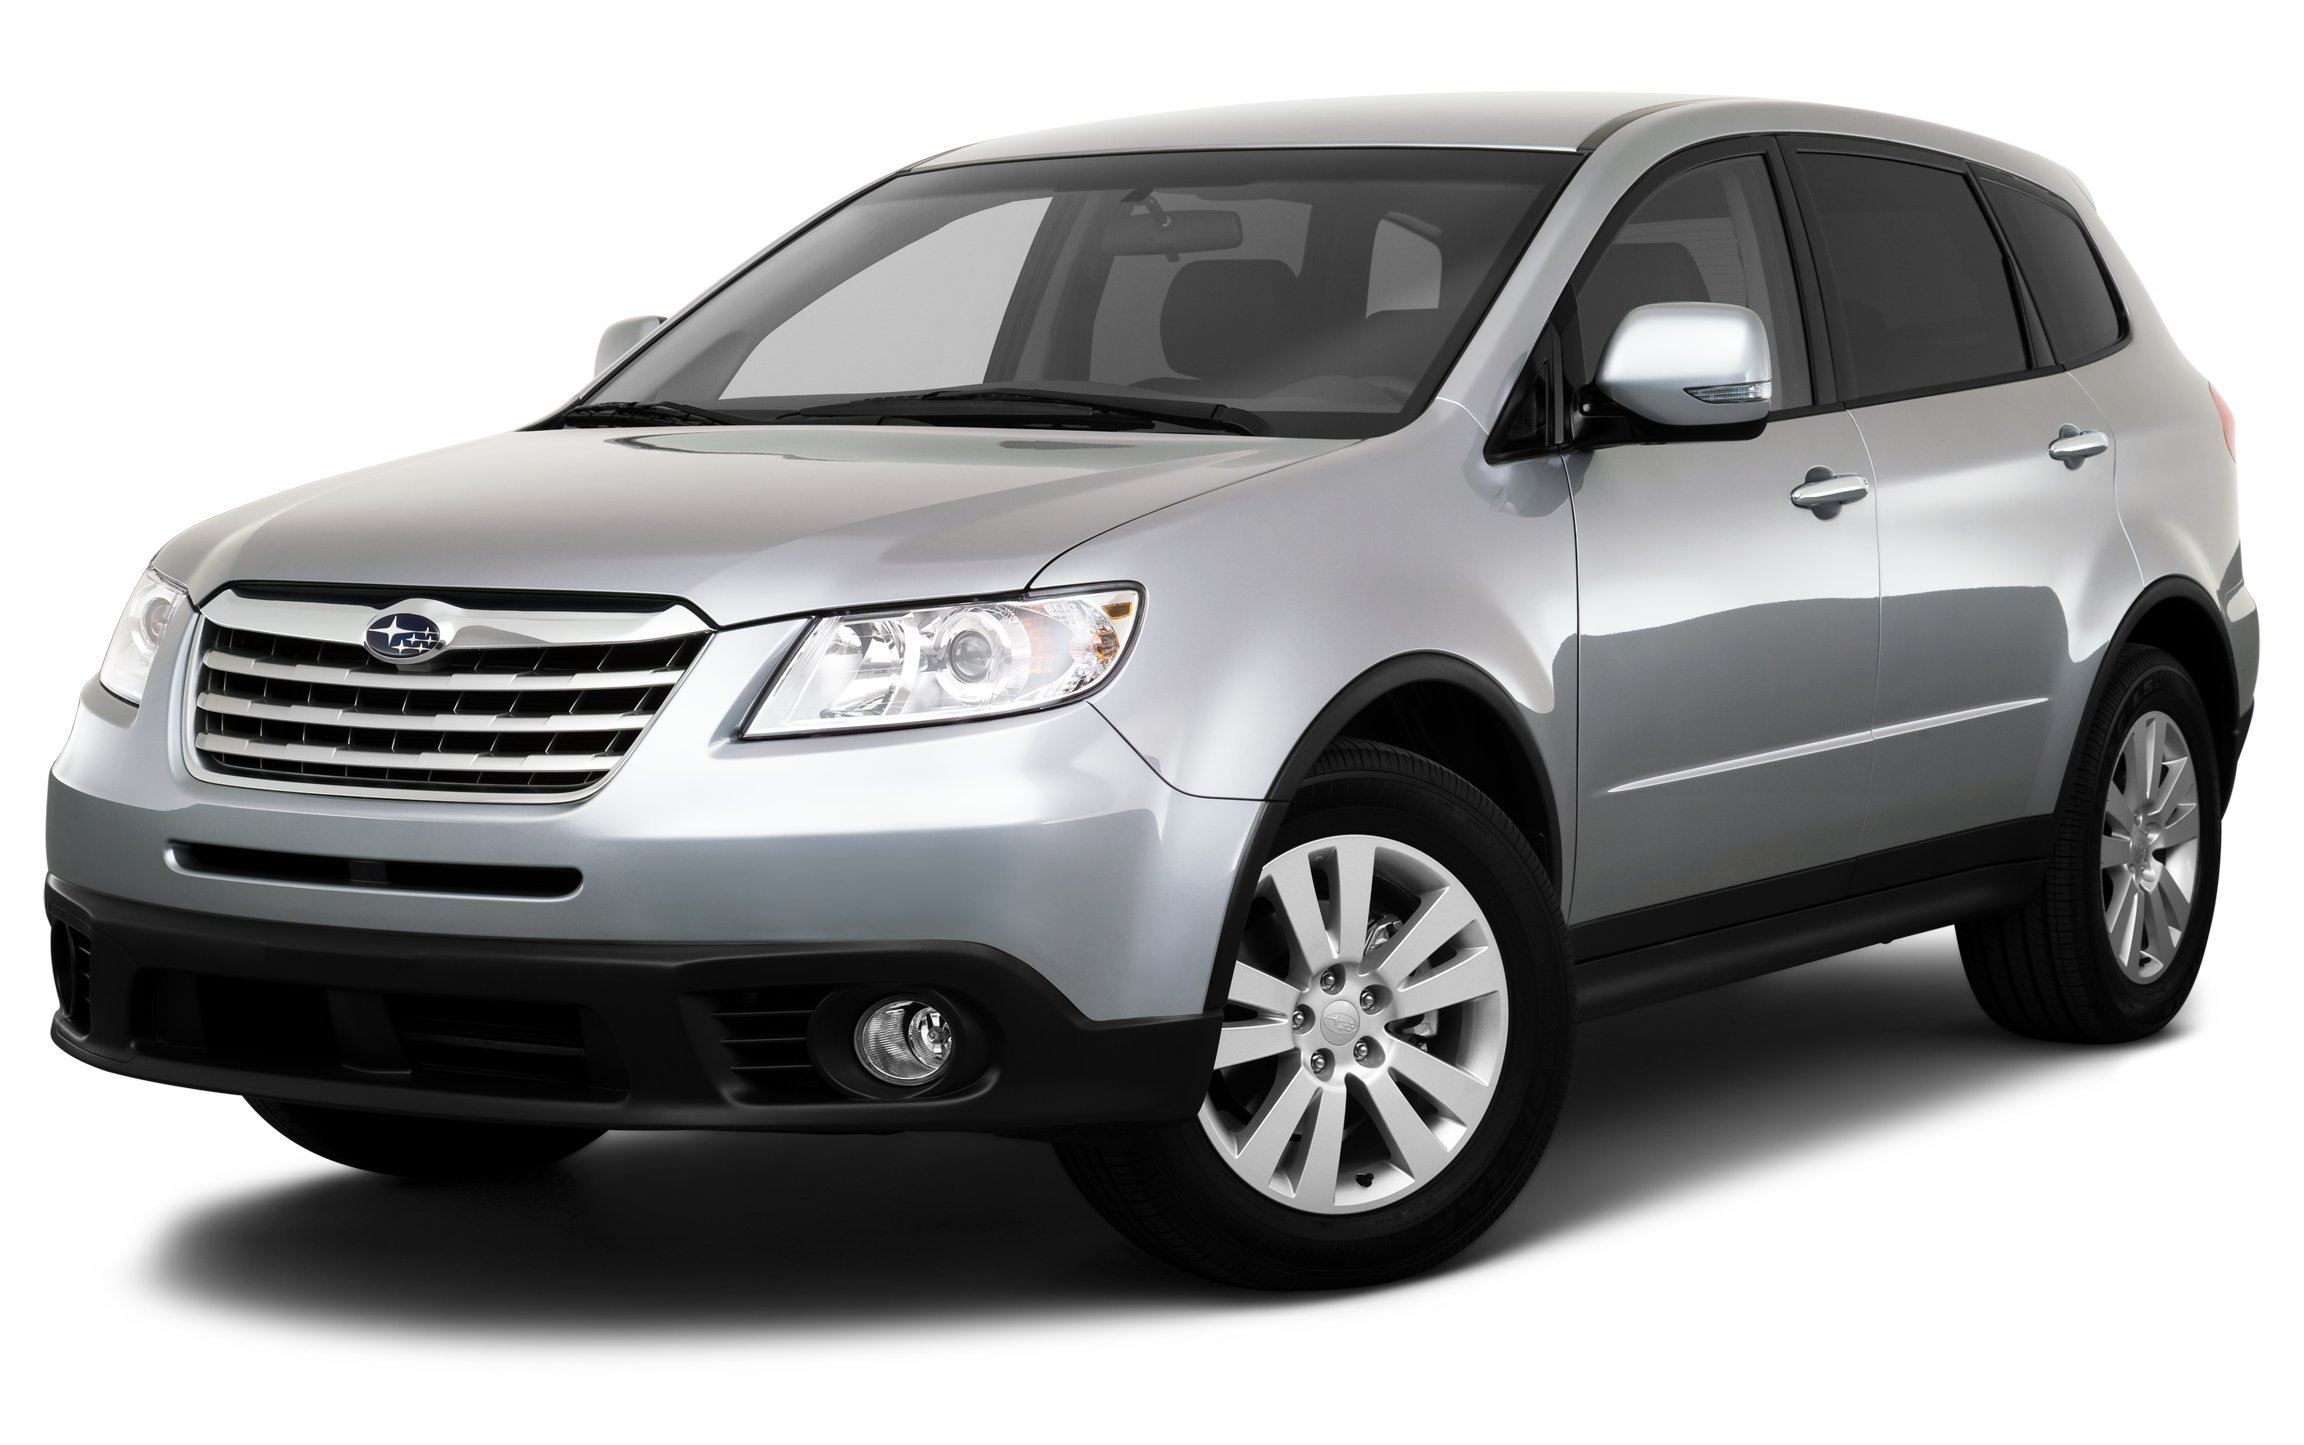 Amazon 2010 subaru tribeca reviews images and specs vehicles 2010 subaru tribeca 36r limited 4 door vanachro Image collections